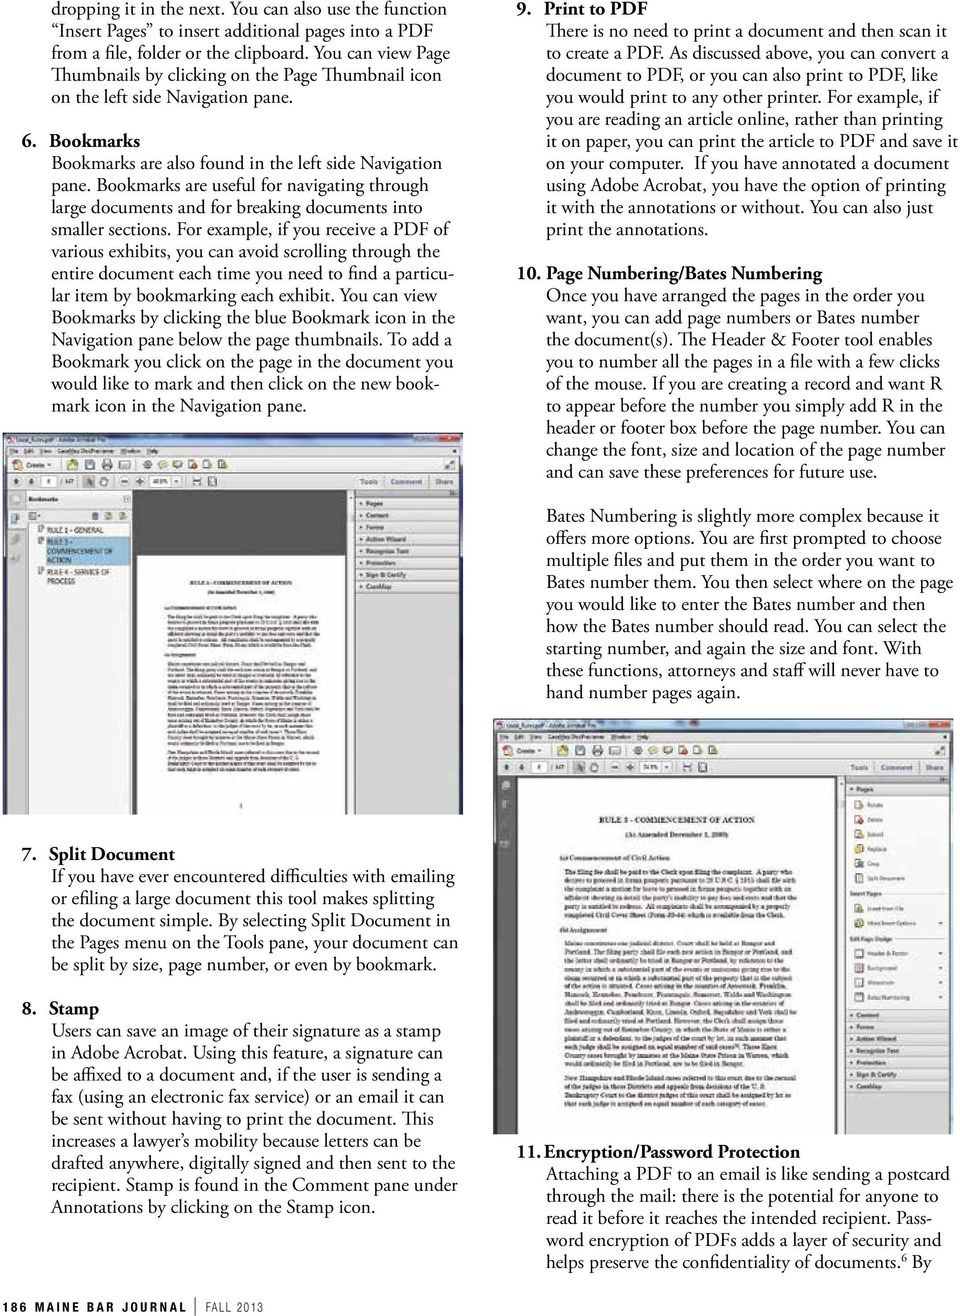 Bookmarks are useful for navigating through large documents and for breaking documents into smaller sections.